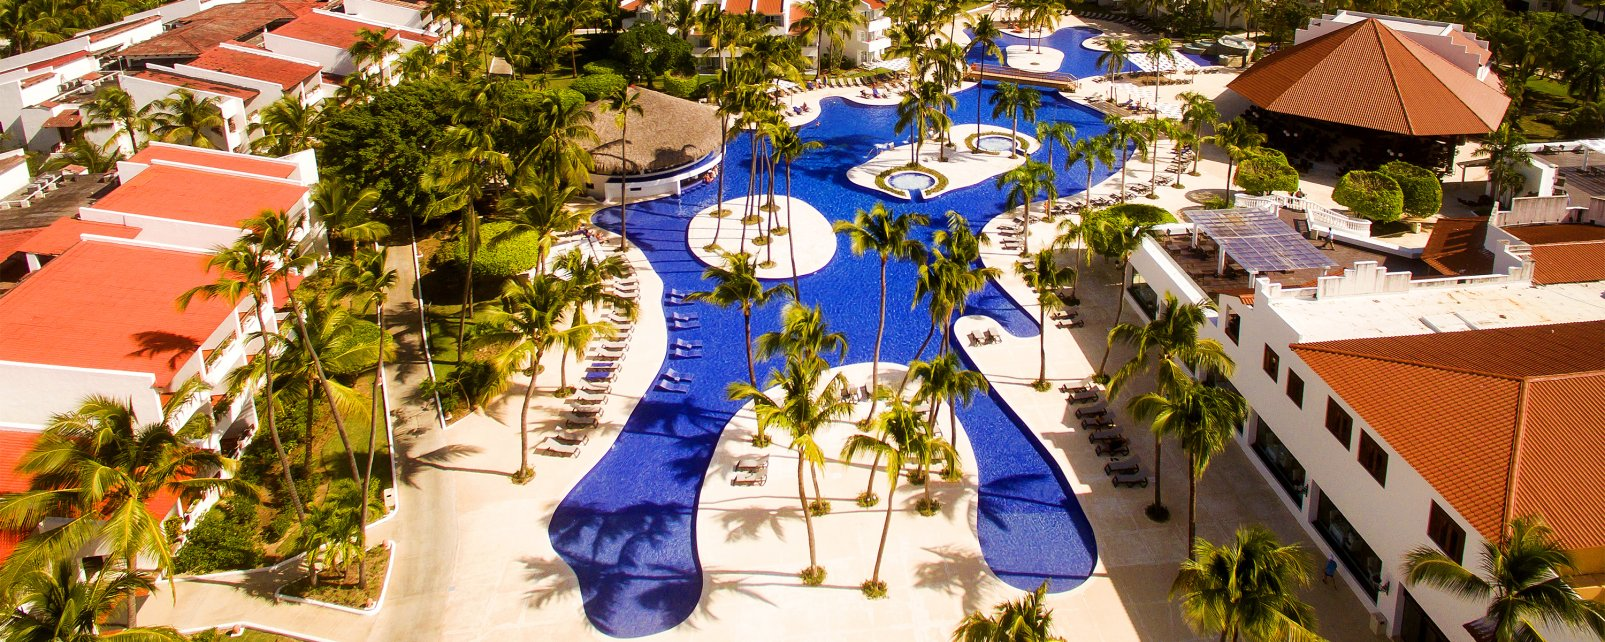 Hôtel Occidental Punta Cana